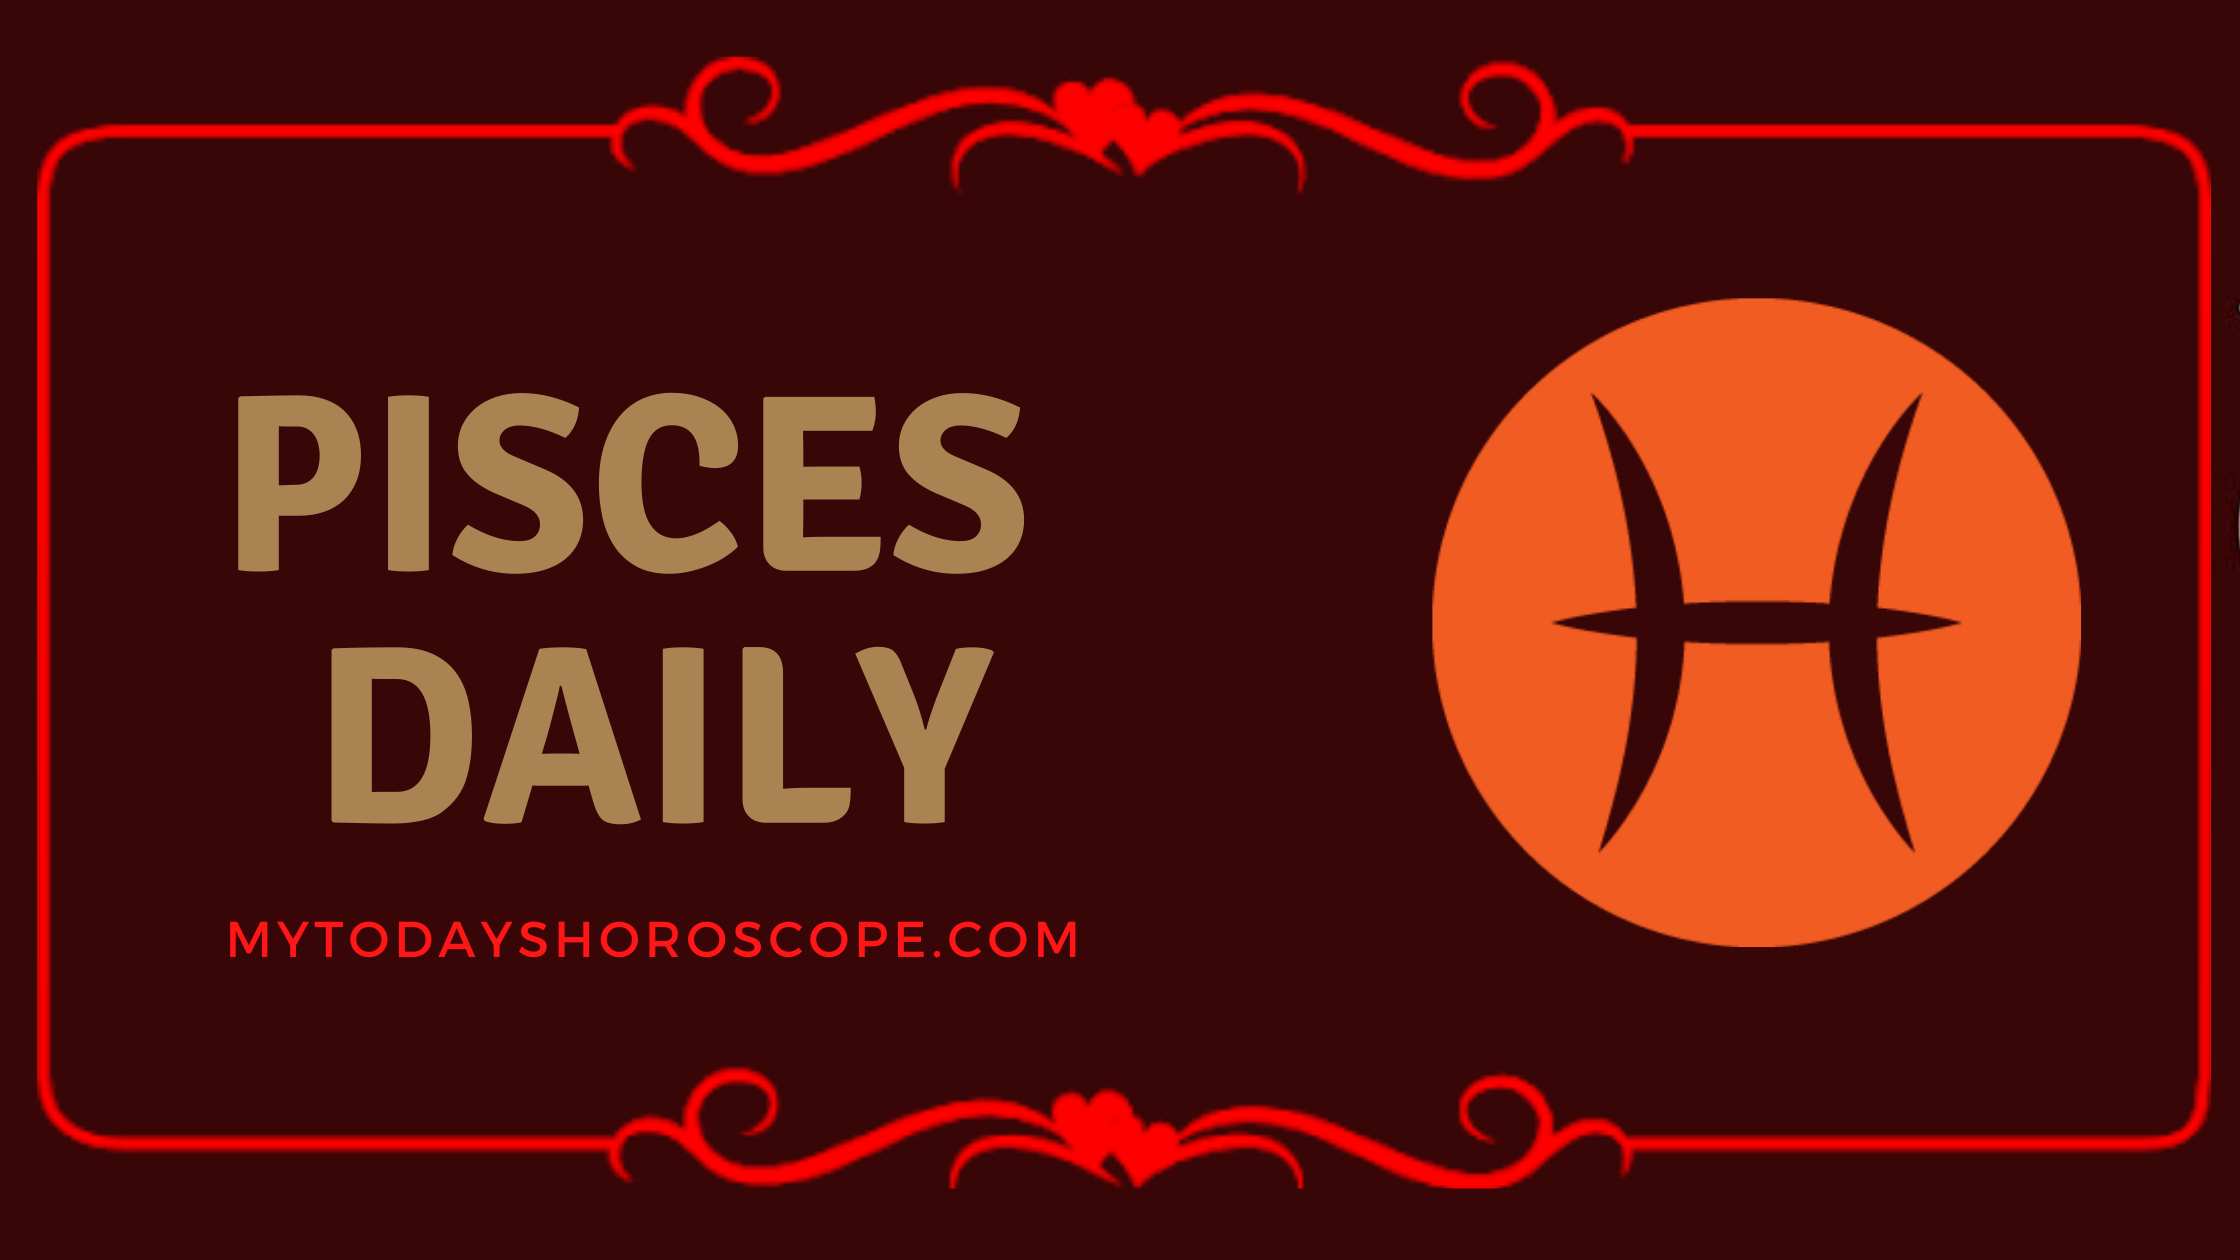 Daily Love Pisces Horoscope, Daily Luck Pisces Astrology, and Daily Career Pisces Horoscope